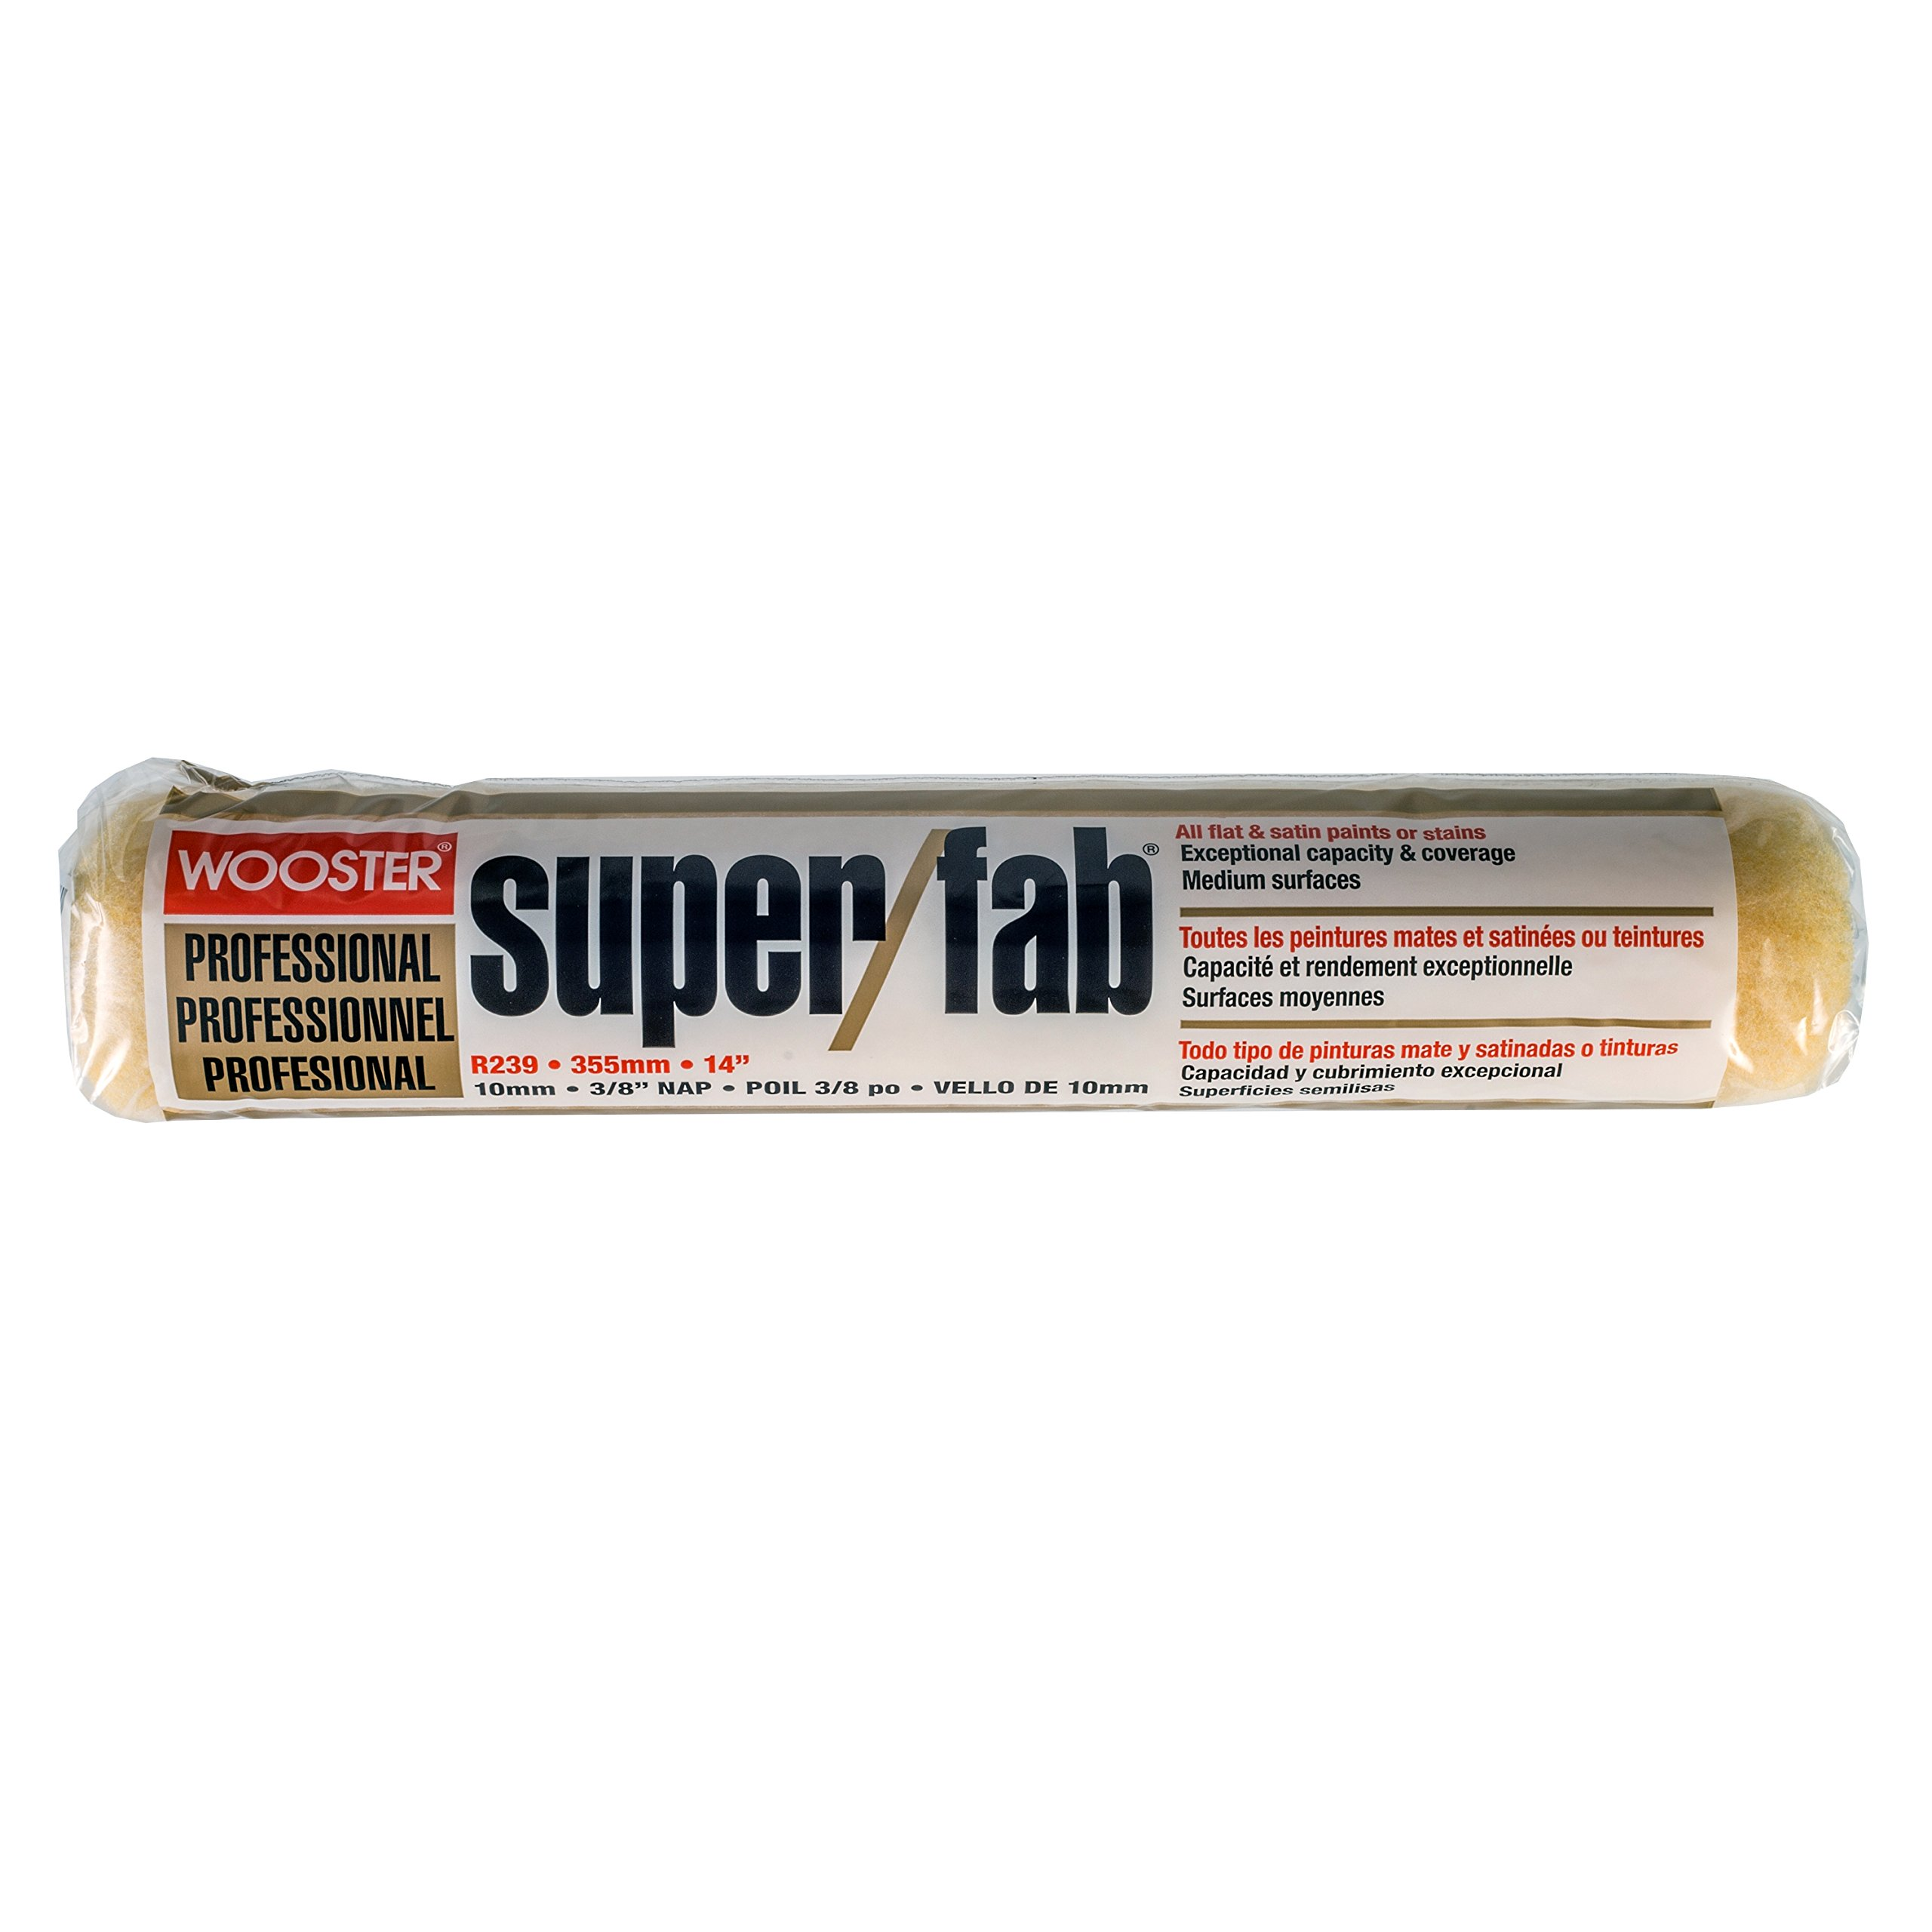 Wooster 211599 14'' Super/Fab 3/8'' Nap Roller Cover